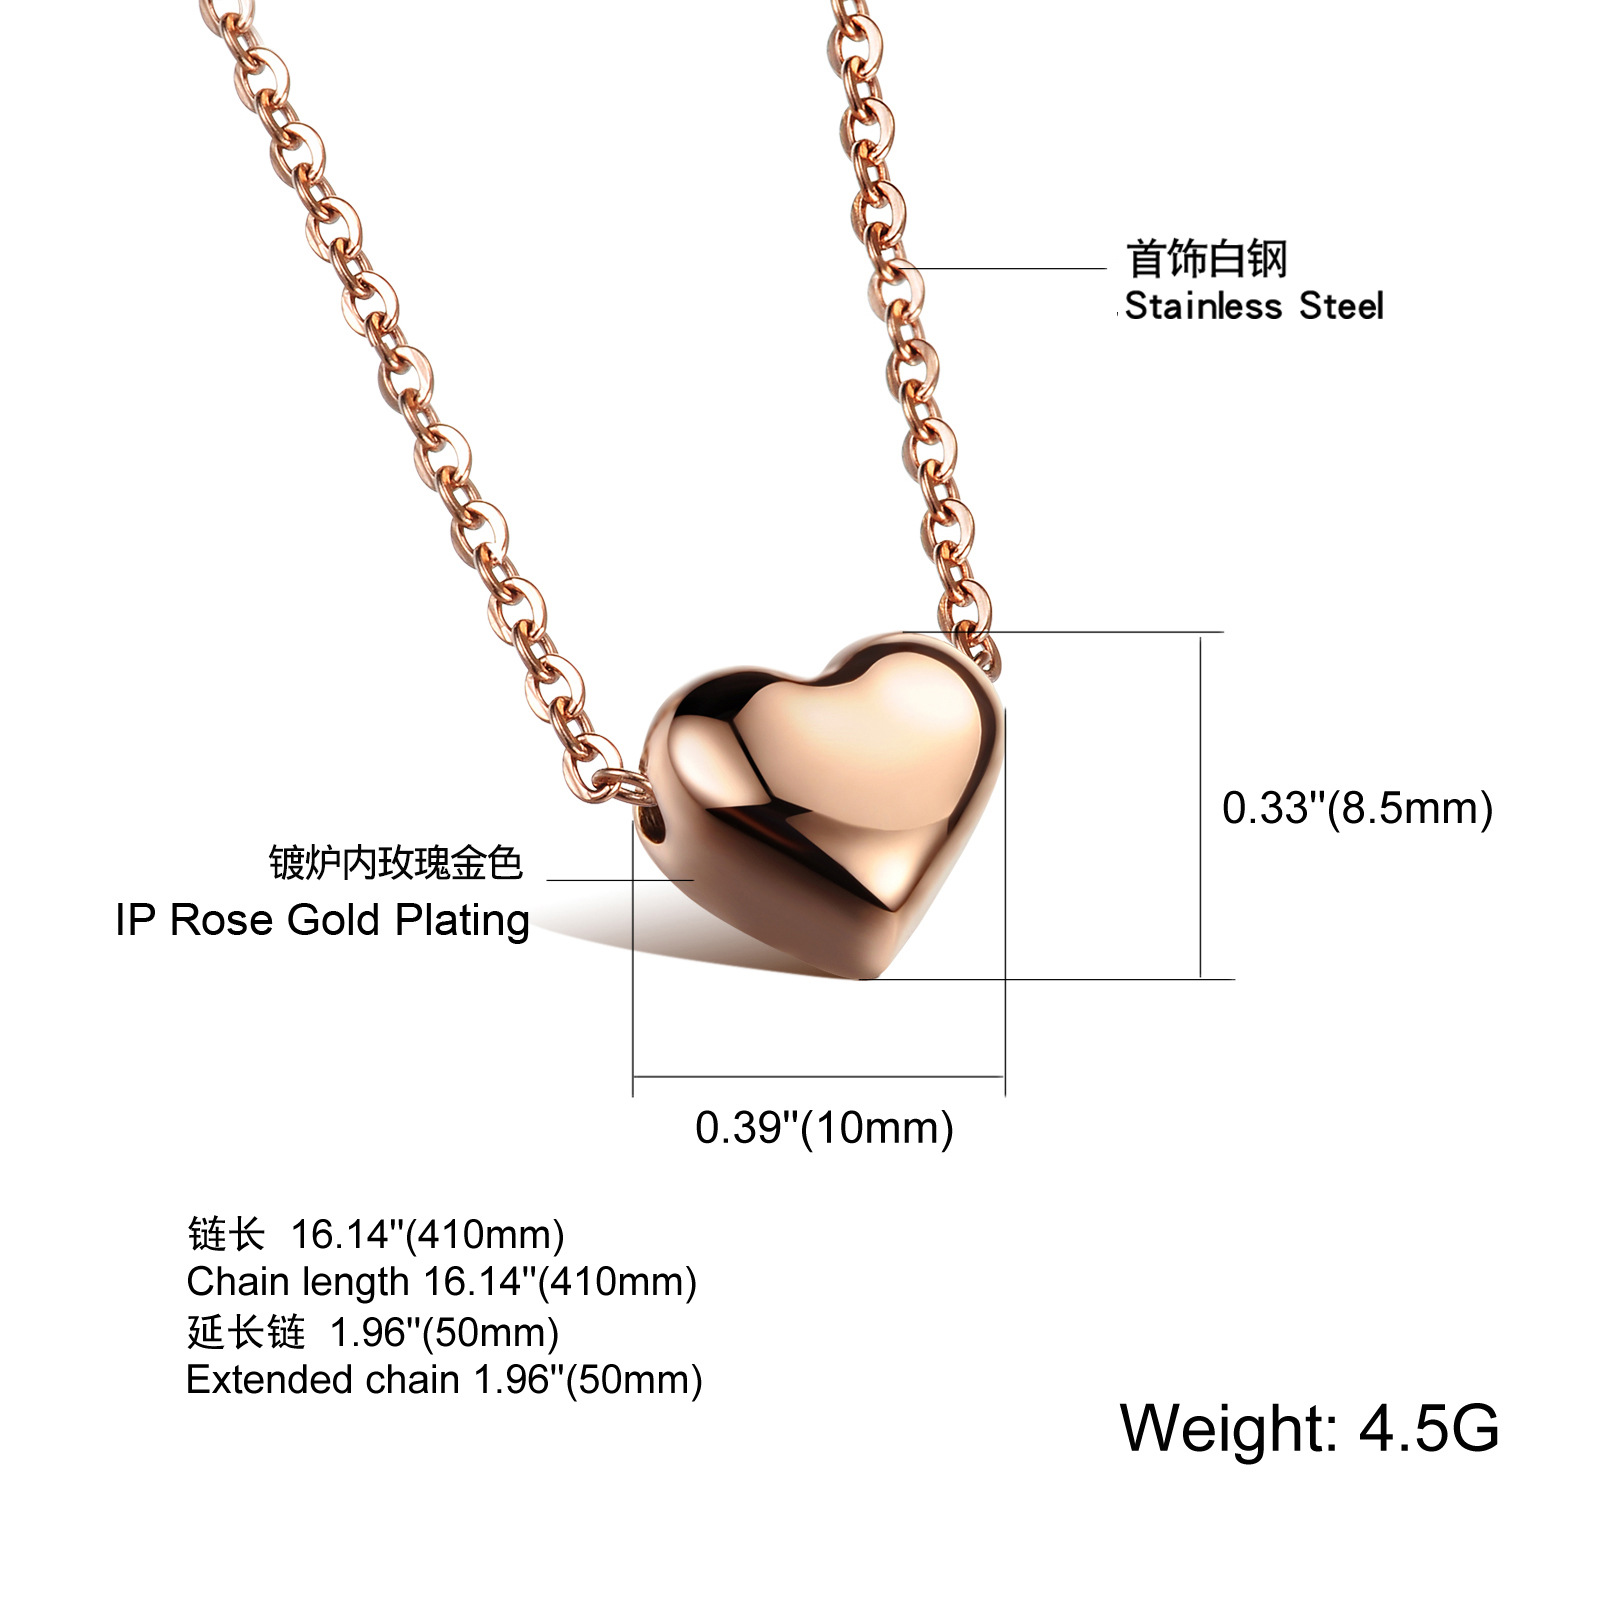 Fashion New Arrival Jewelry Simple Design Stainless Steel Heart Pendant Chain Necklace For Women